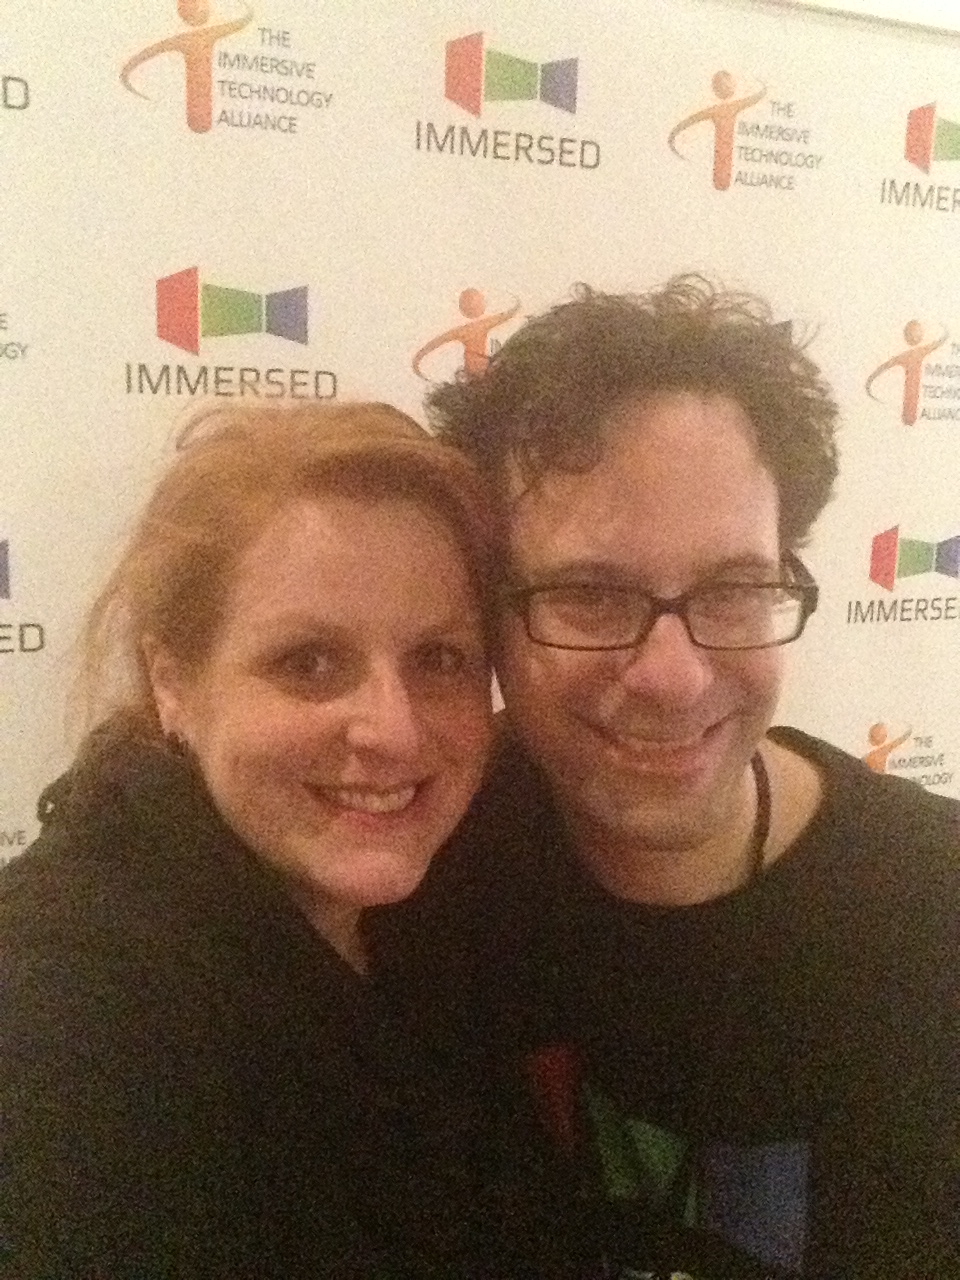 Pam Swartz and Neil Schneider getting ready for Immersed!